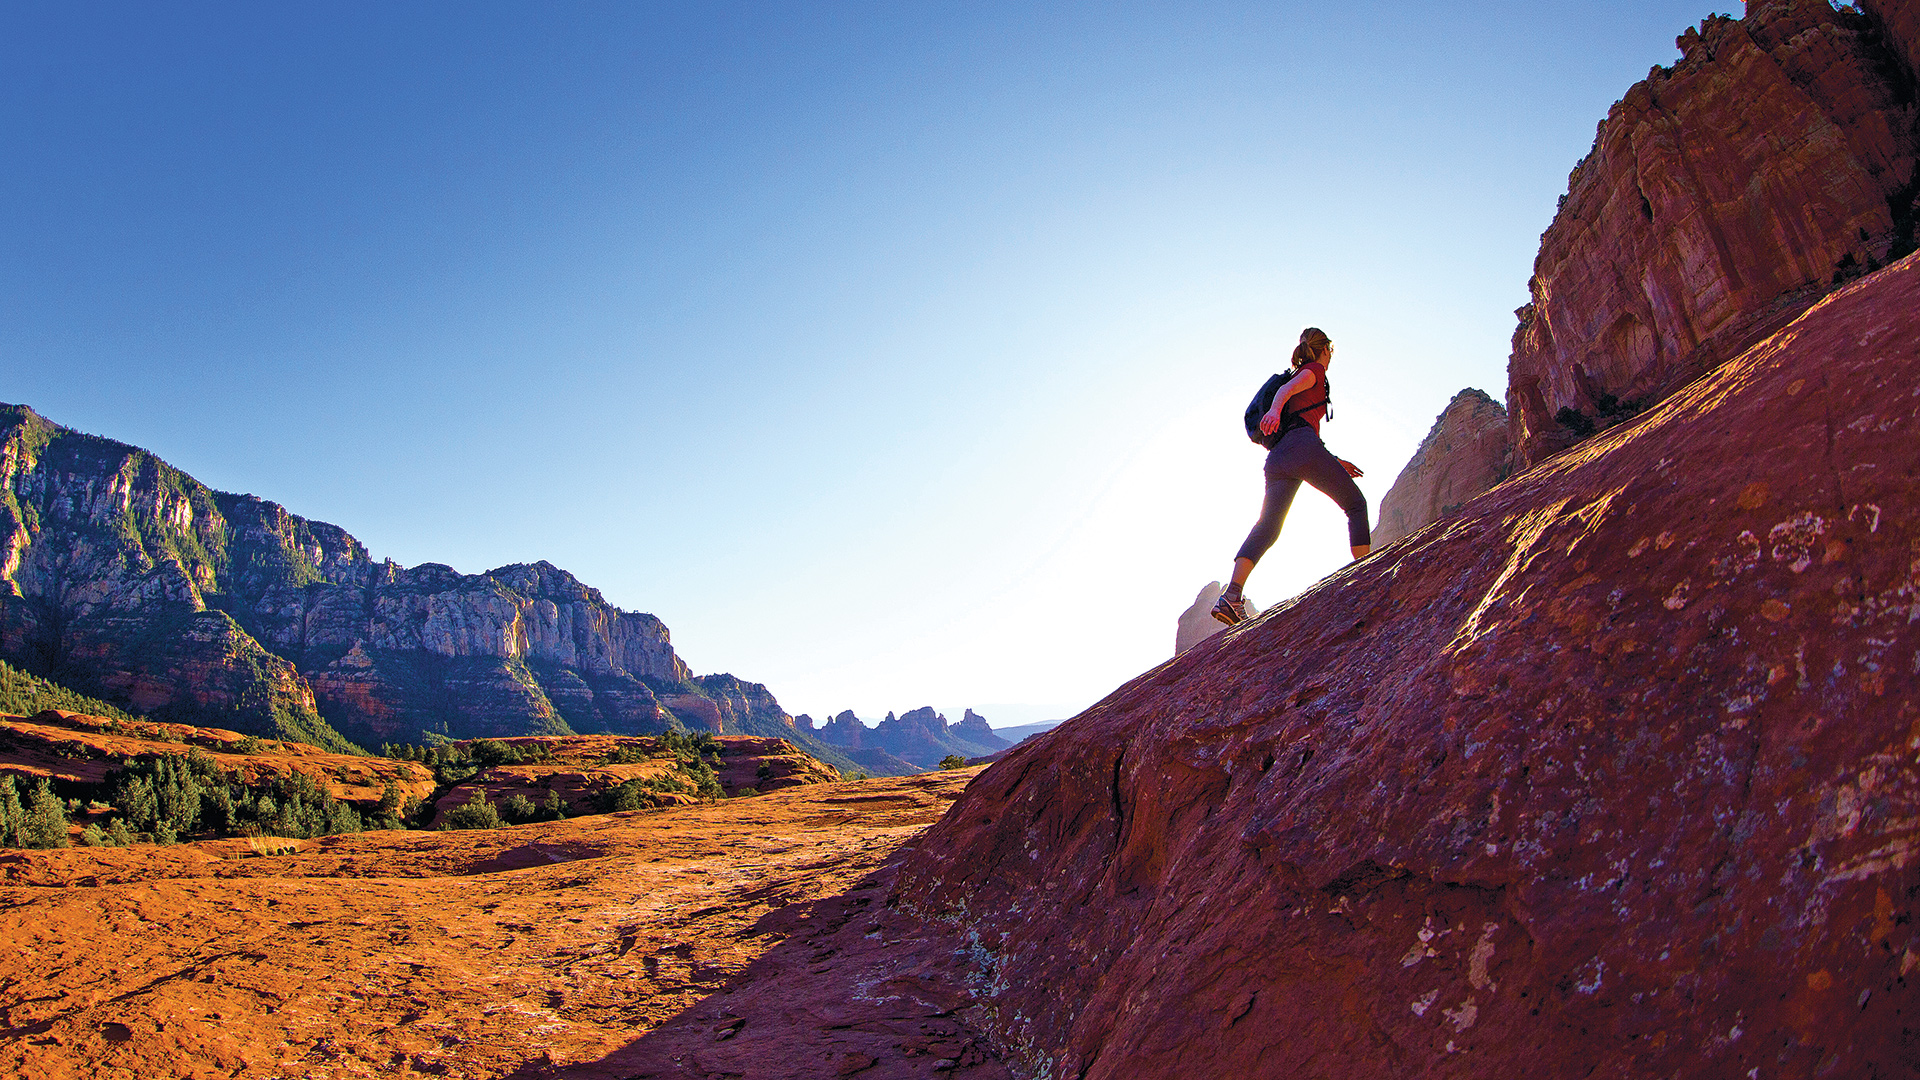 Go hiking at one of the many nearby trails